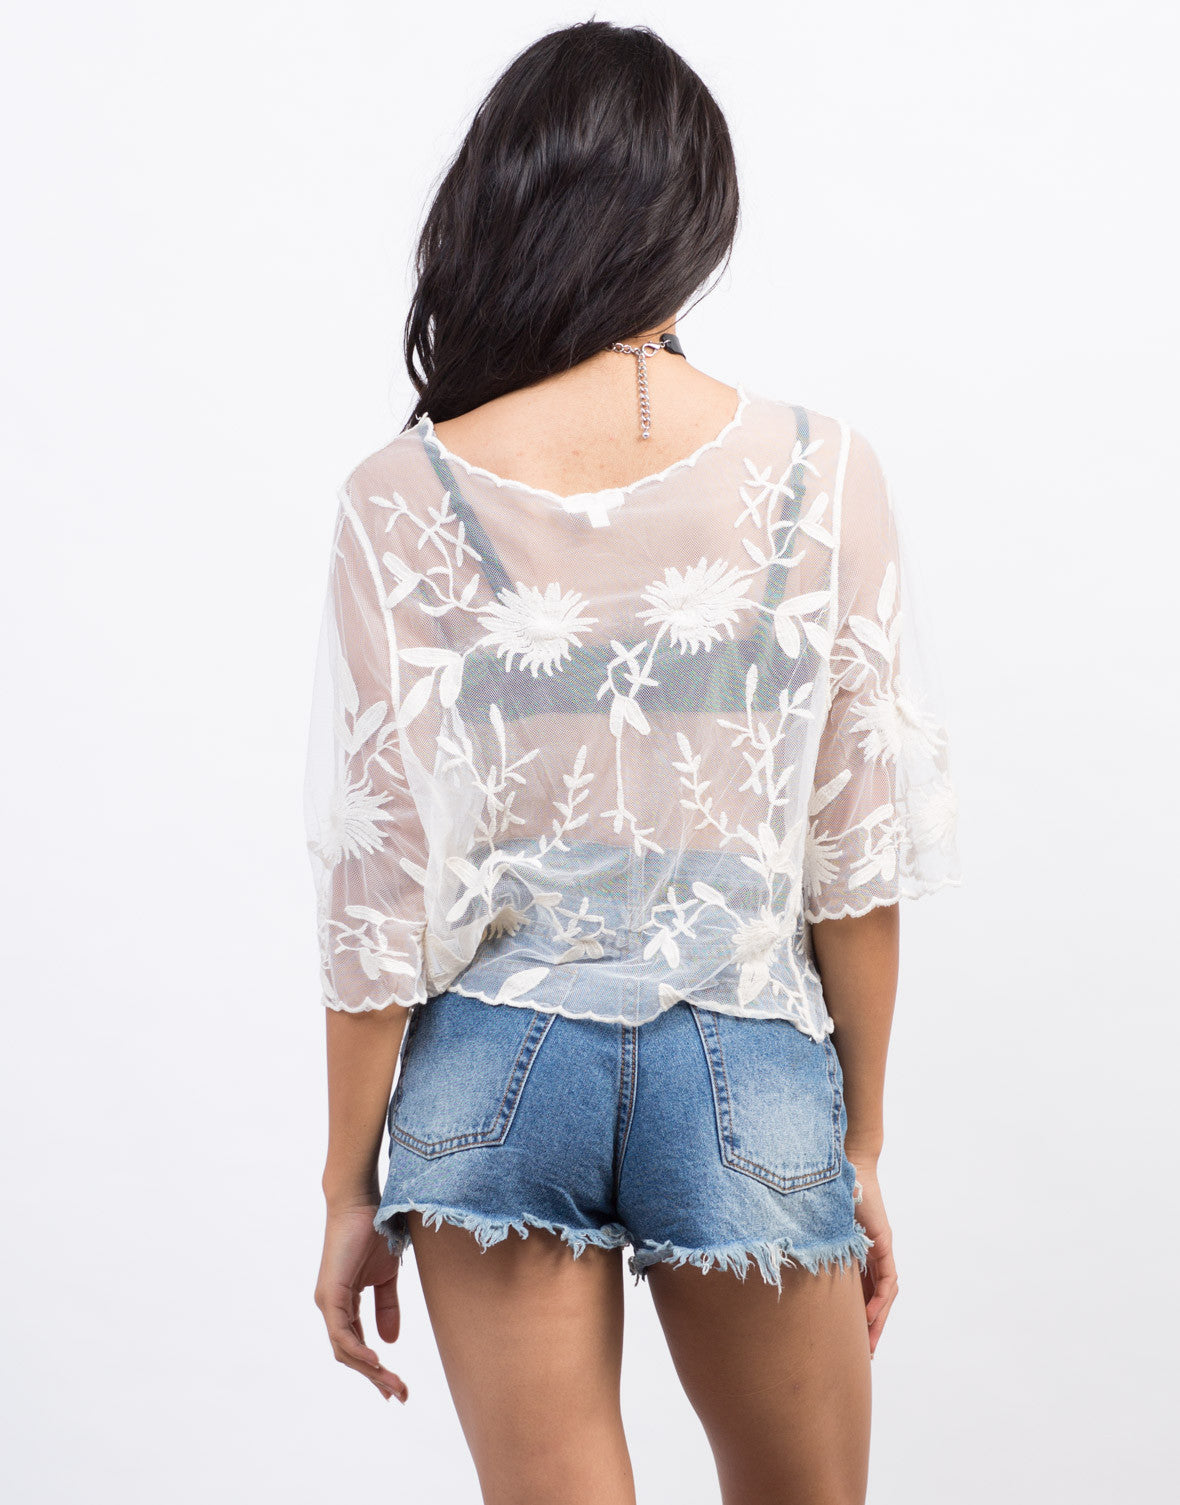 Back View of Embroidered Lacey Mesh Top